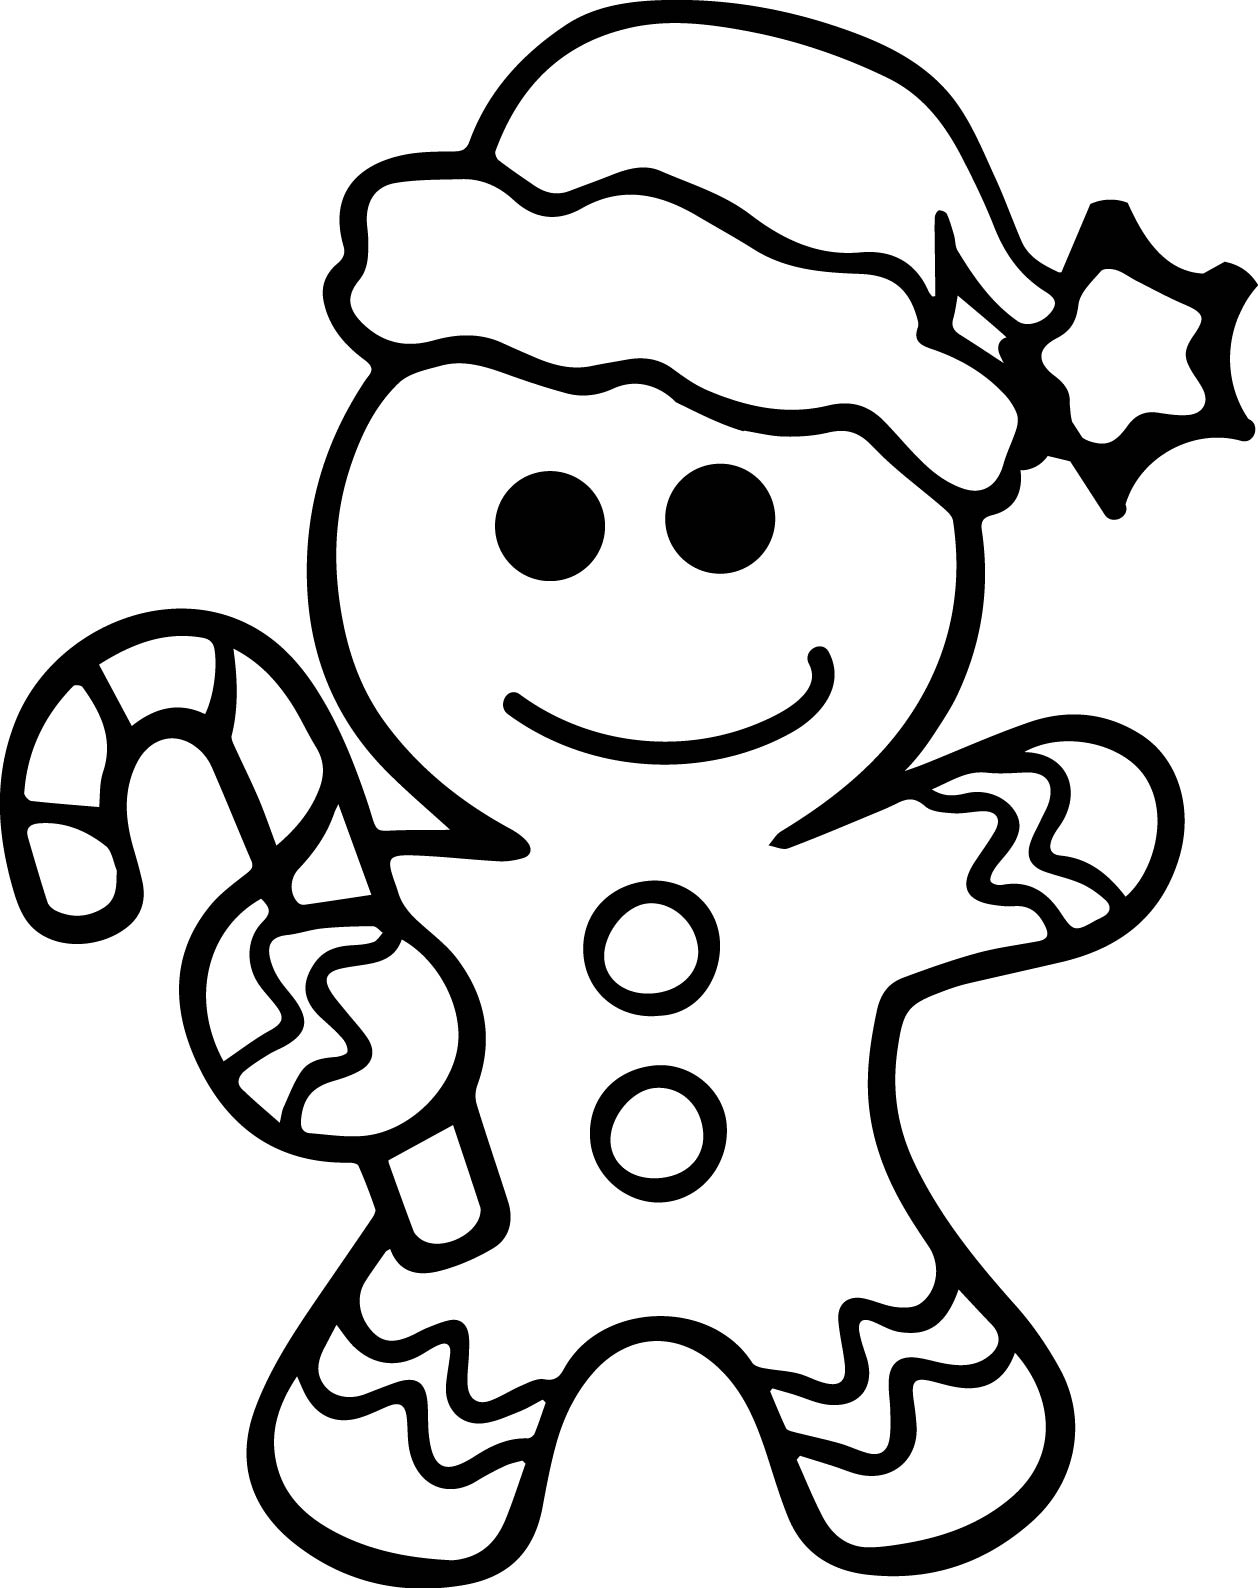 1258x1588 Gingerbread Man Coloring Page Pages Captivating